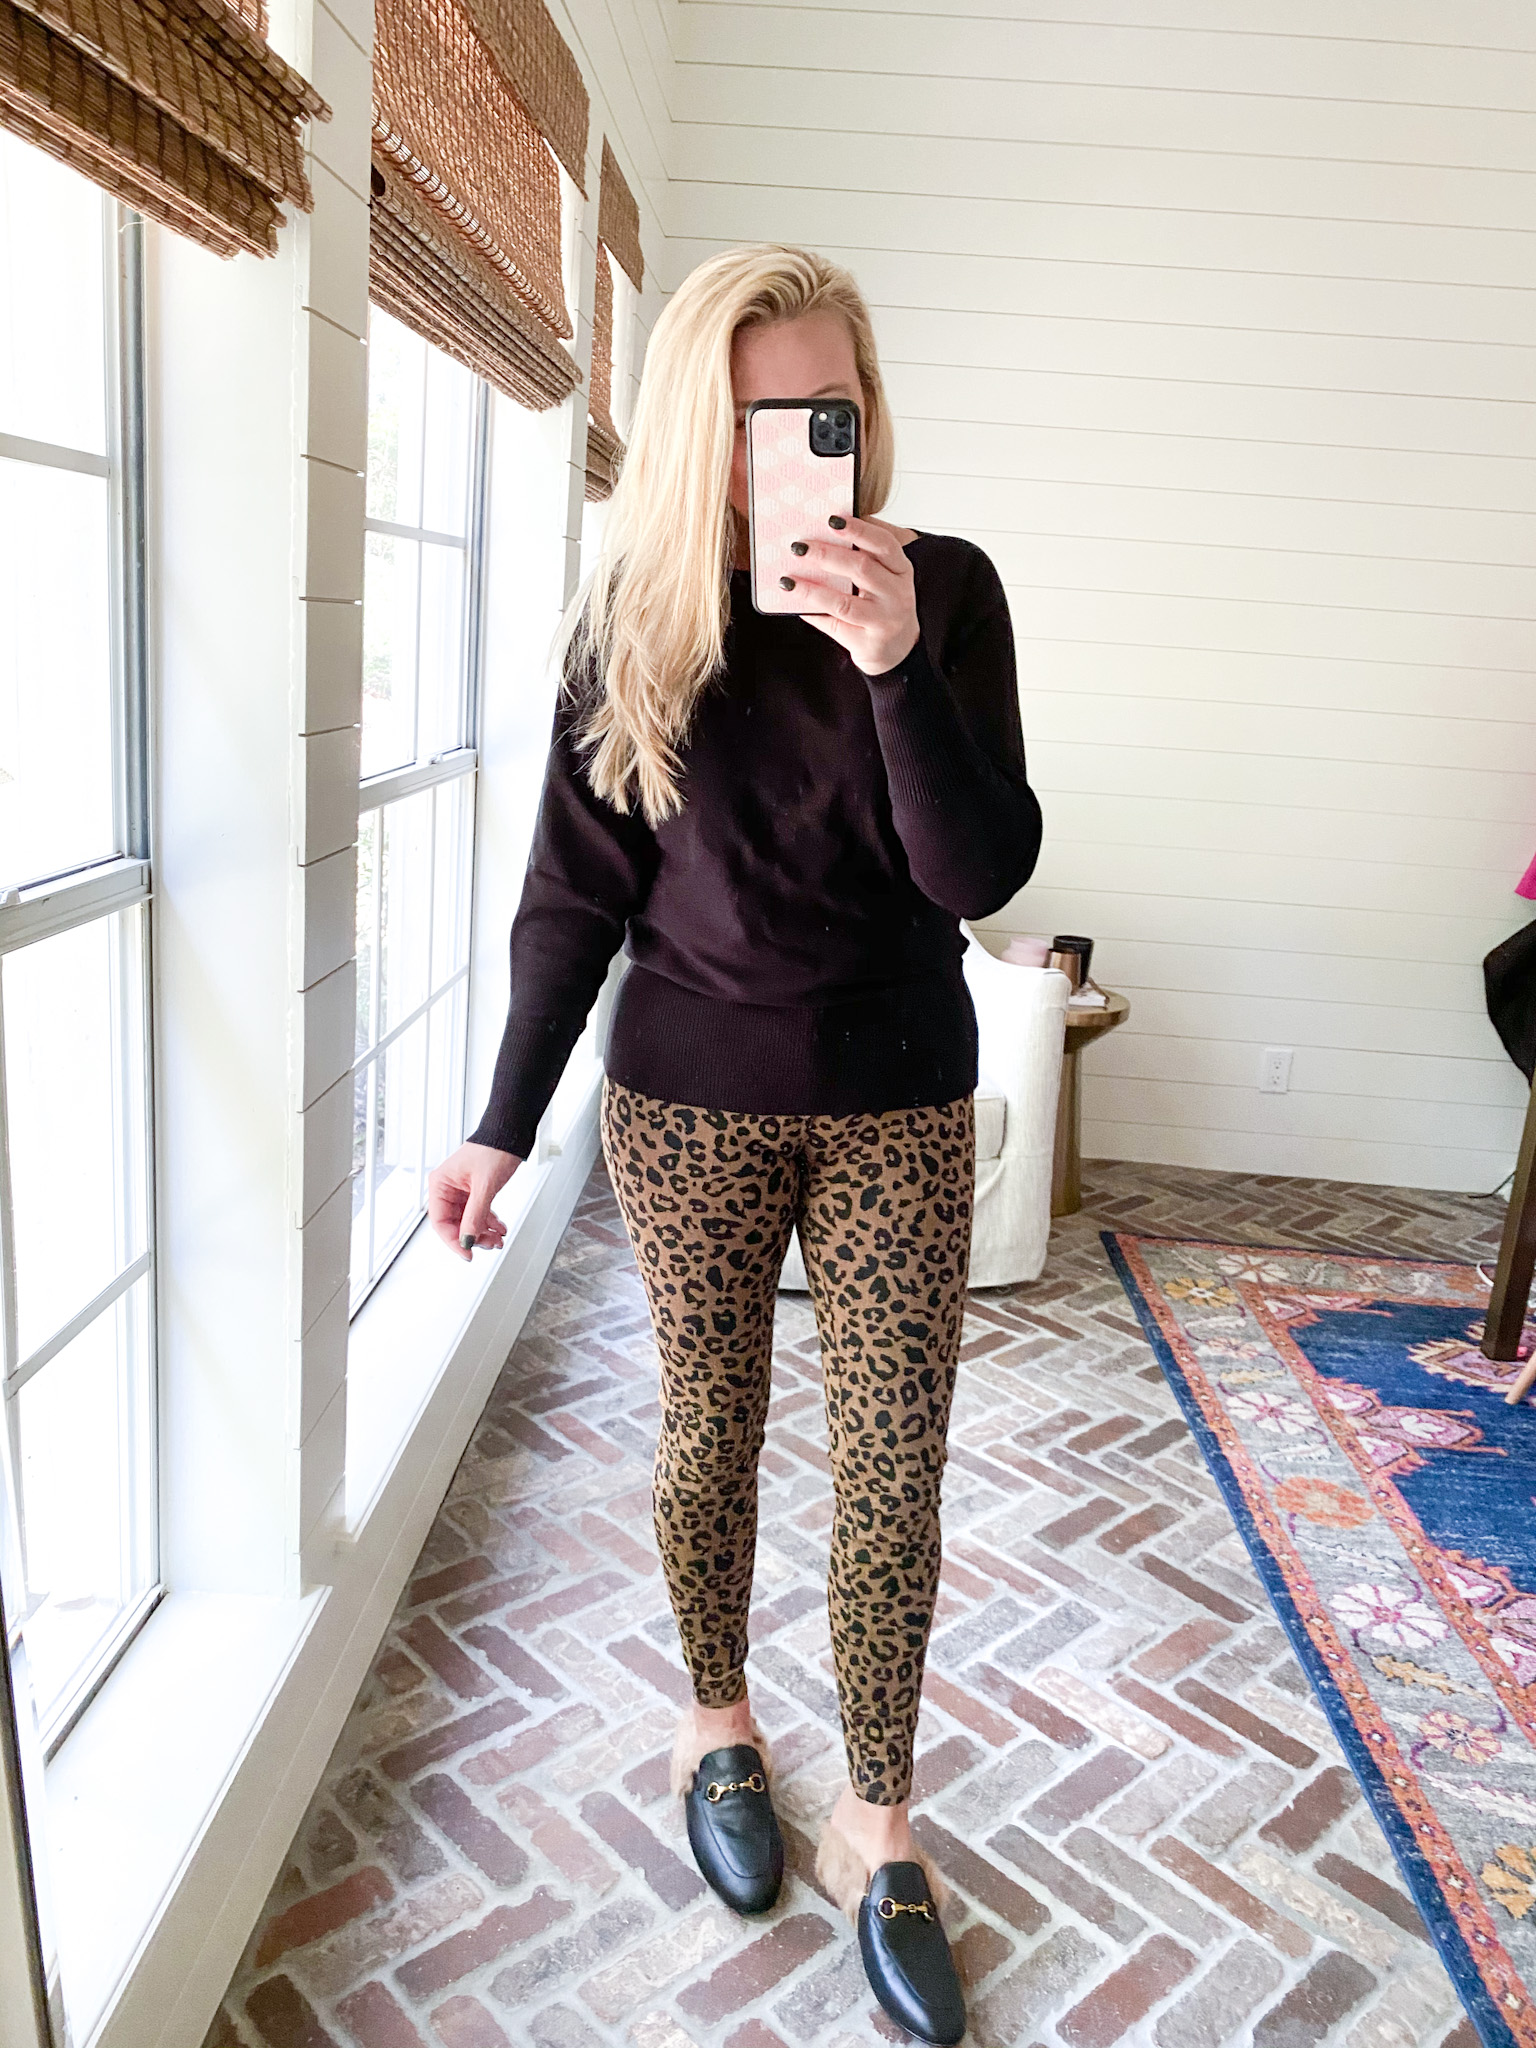 Prime Day by popular Houston fashion blog, Fancy Ashley: image of a woman wearing a Amazon black sweater, leopard print pants, and black mules.